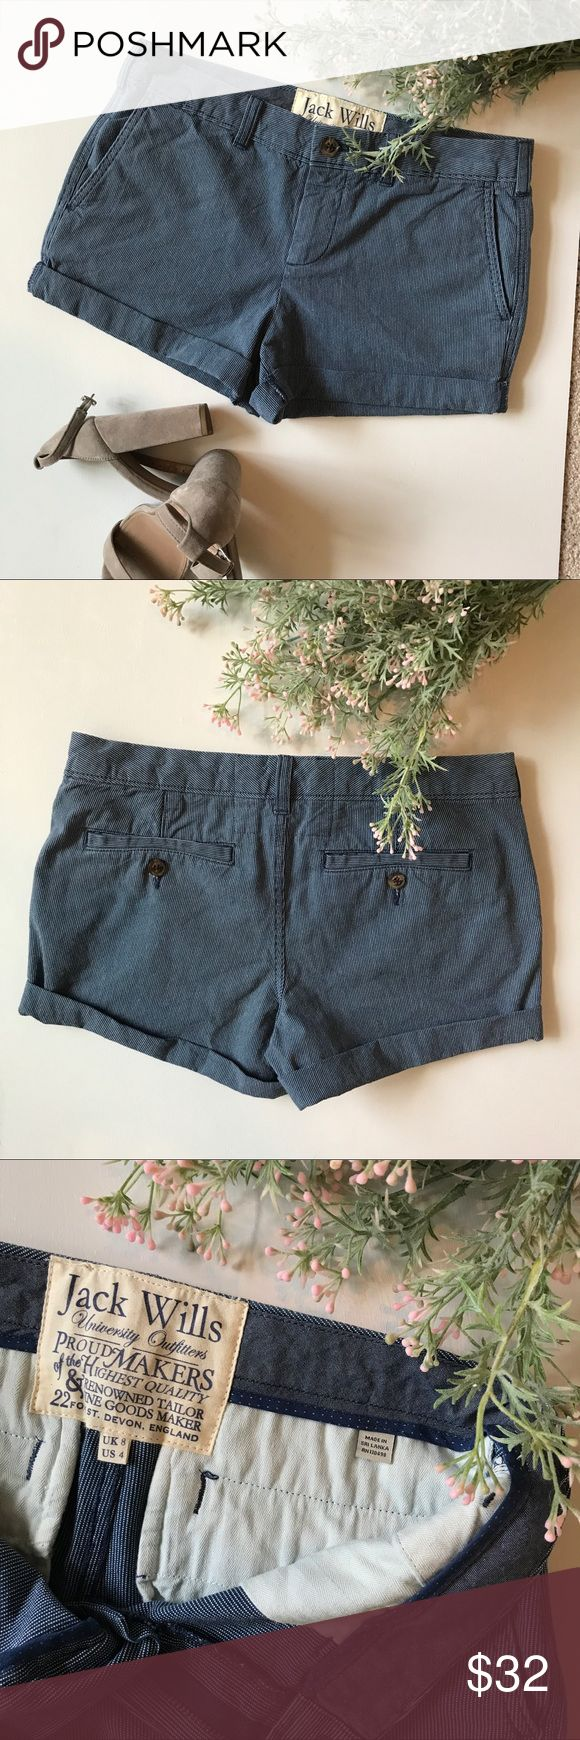 Jack Wills University Outfitters Shorts, size 4 These Jack Wills light weight shorts are perfect for the summer heat! Excellent condition. Jack Wills Shorts